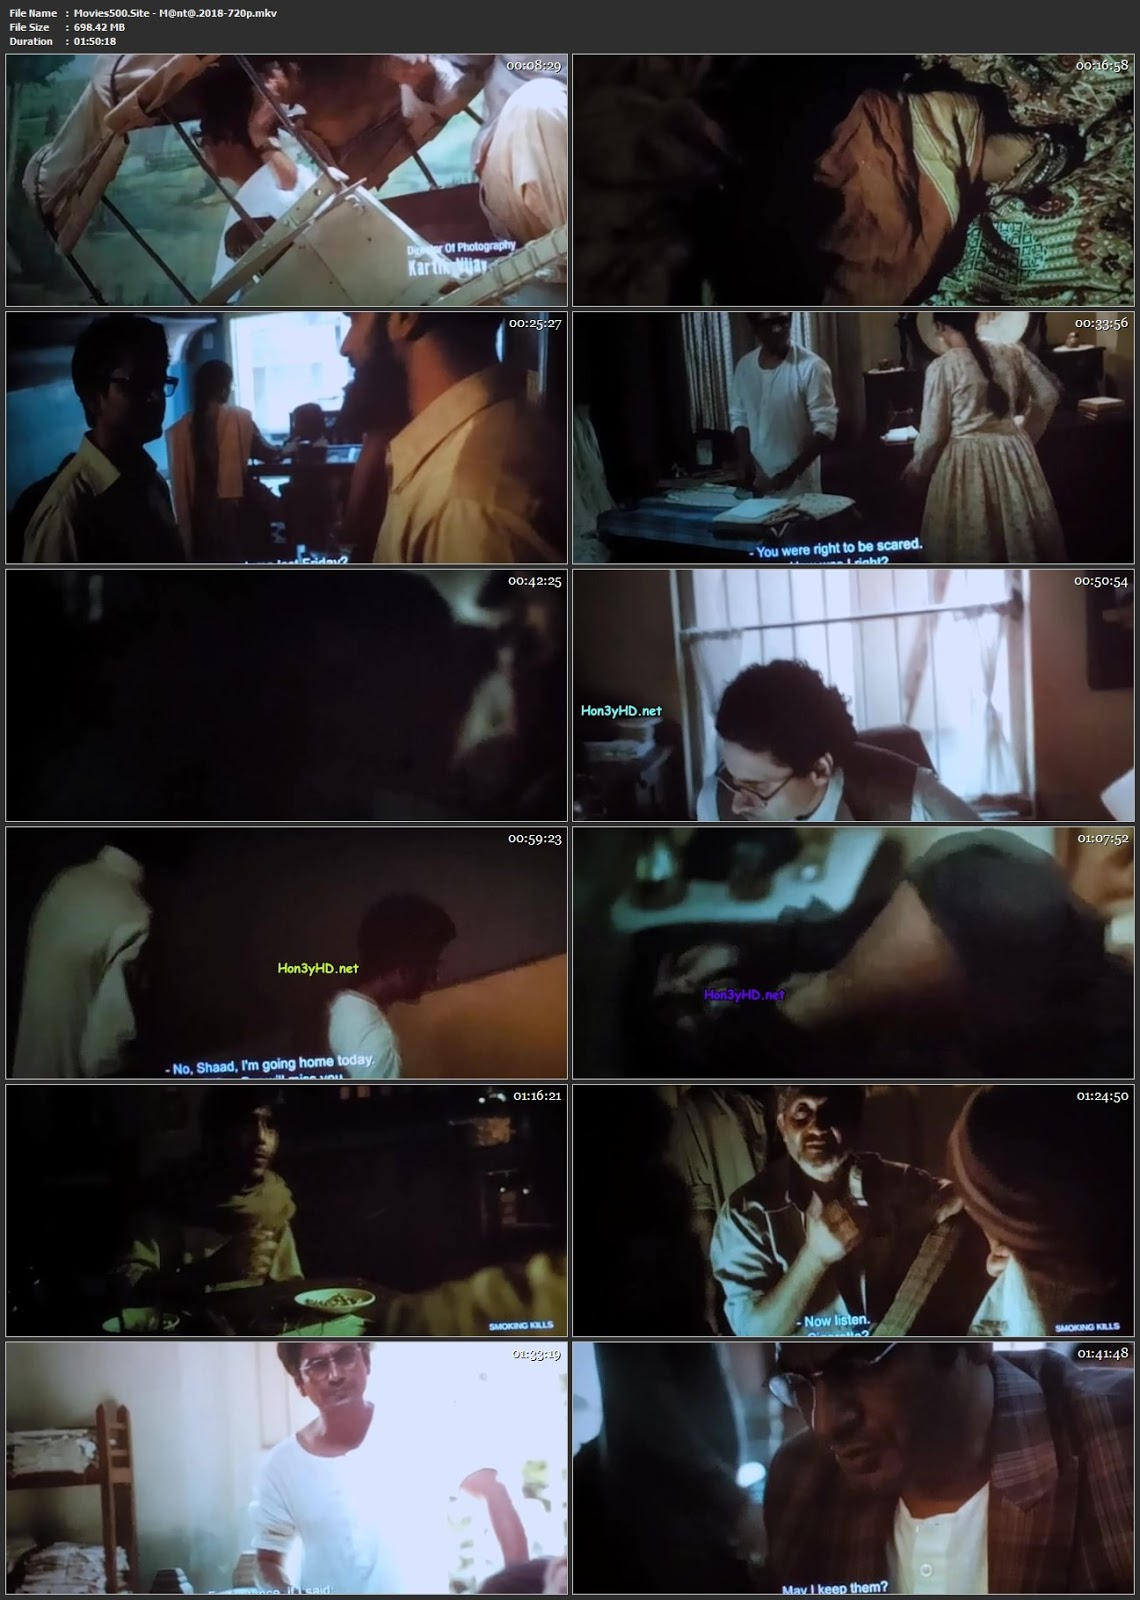 Manto 2018 Hindi Movie X64 HDCAM 720p